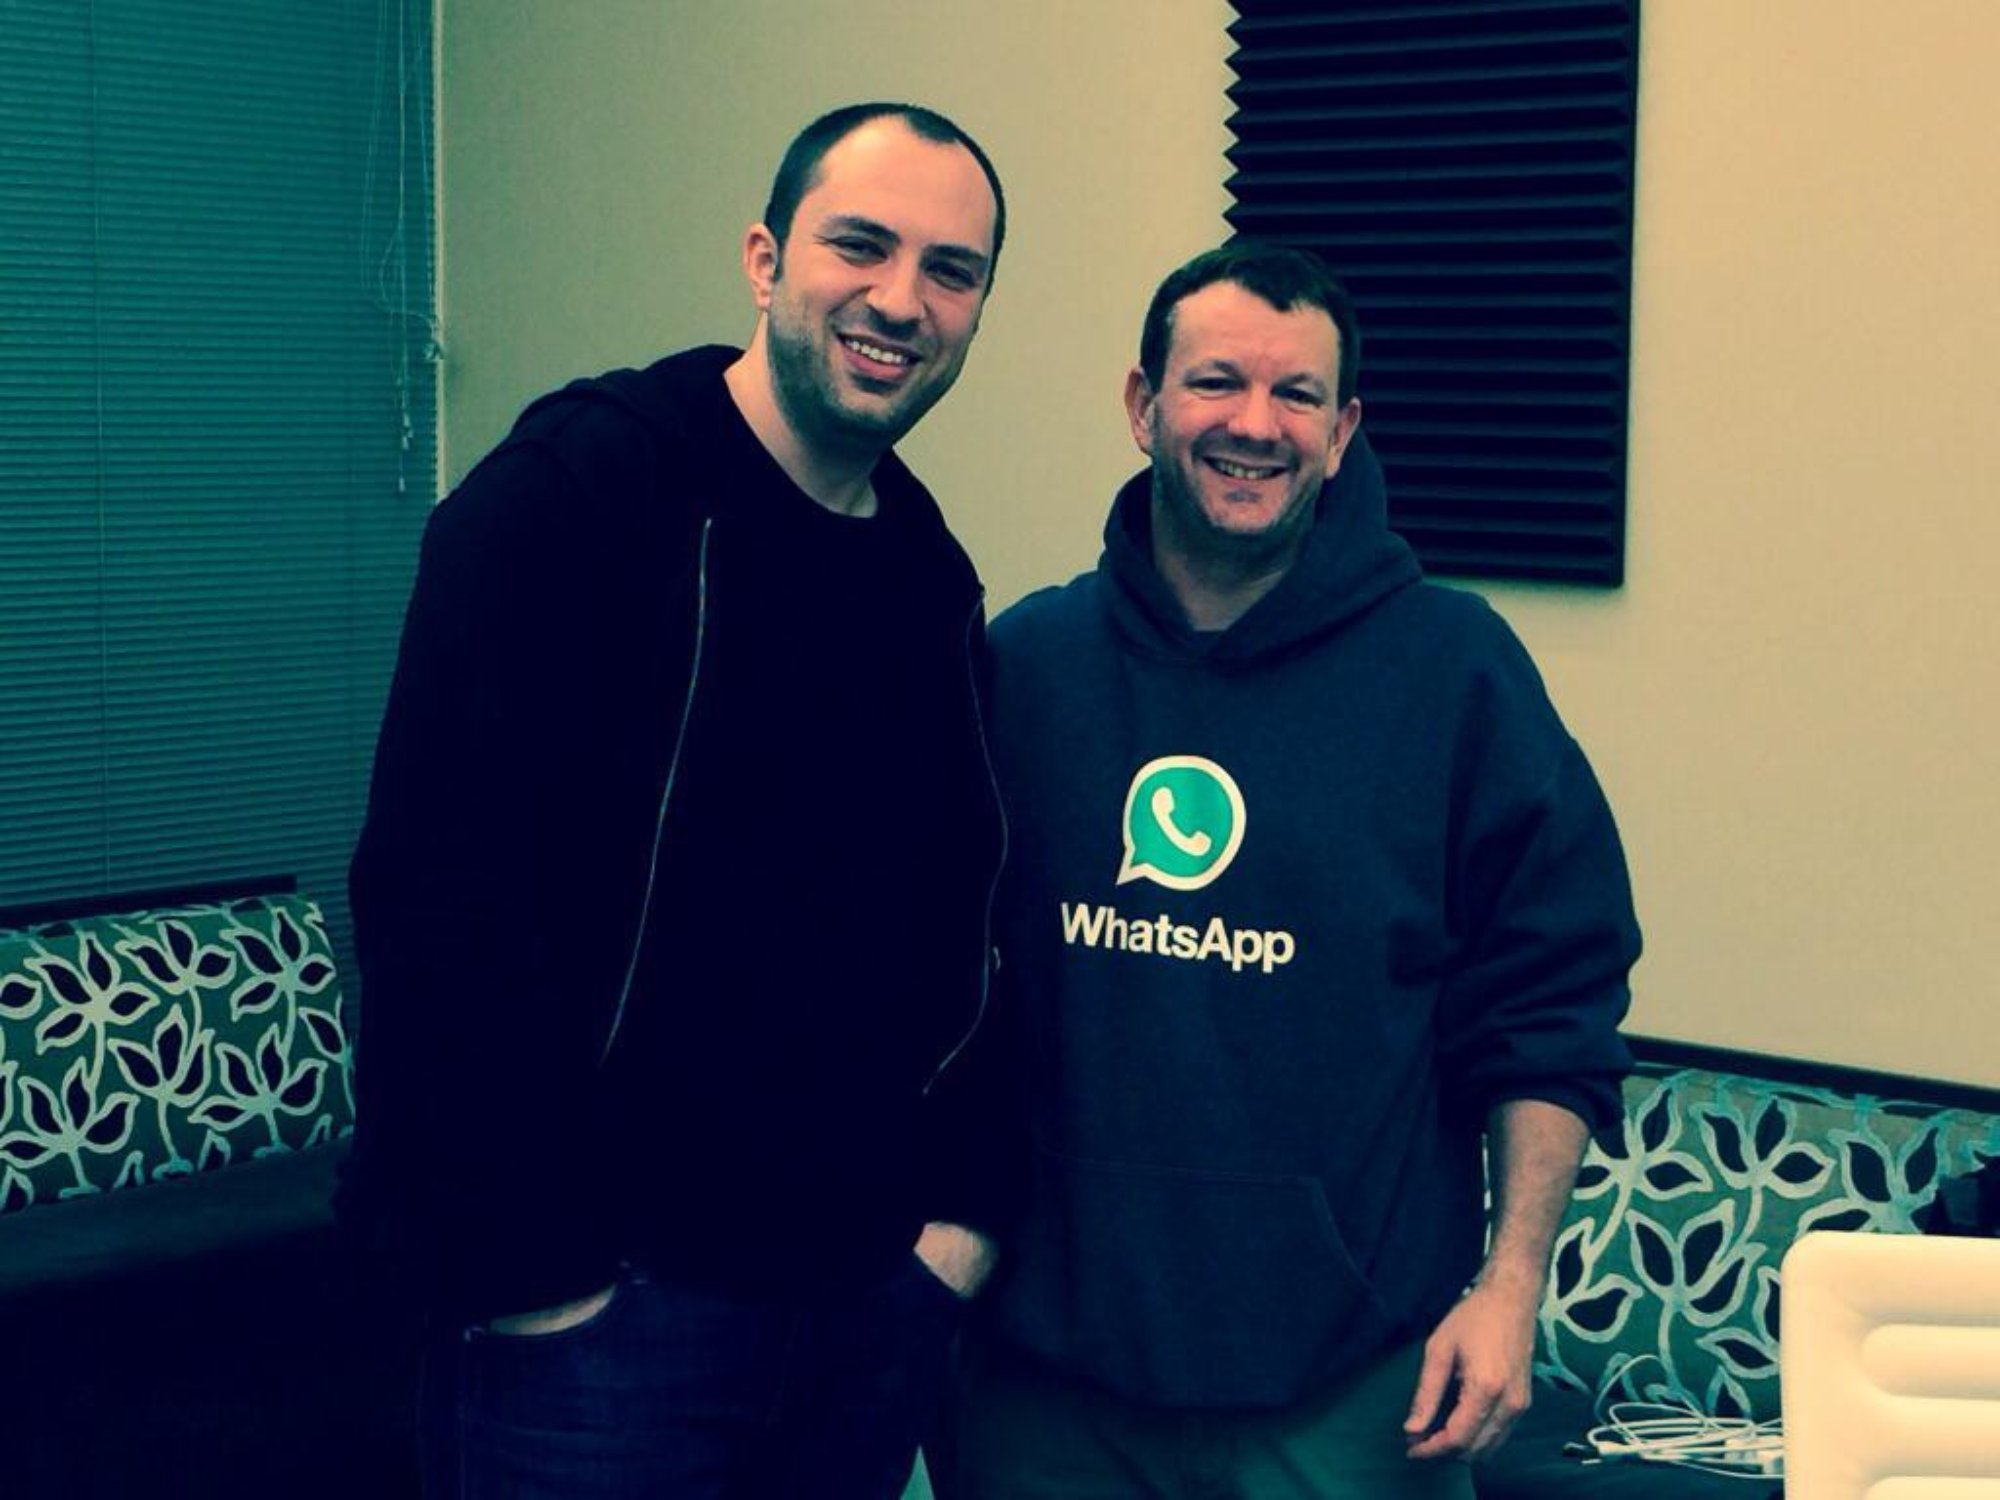 WhatsApp Co-Founder Brian Acton Bids Company Farewell